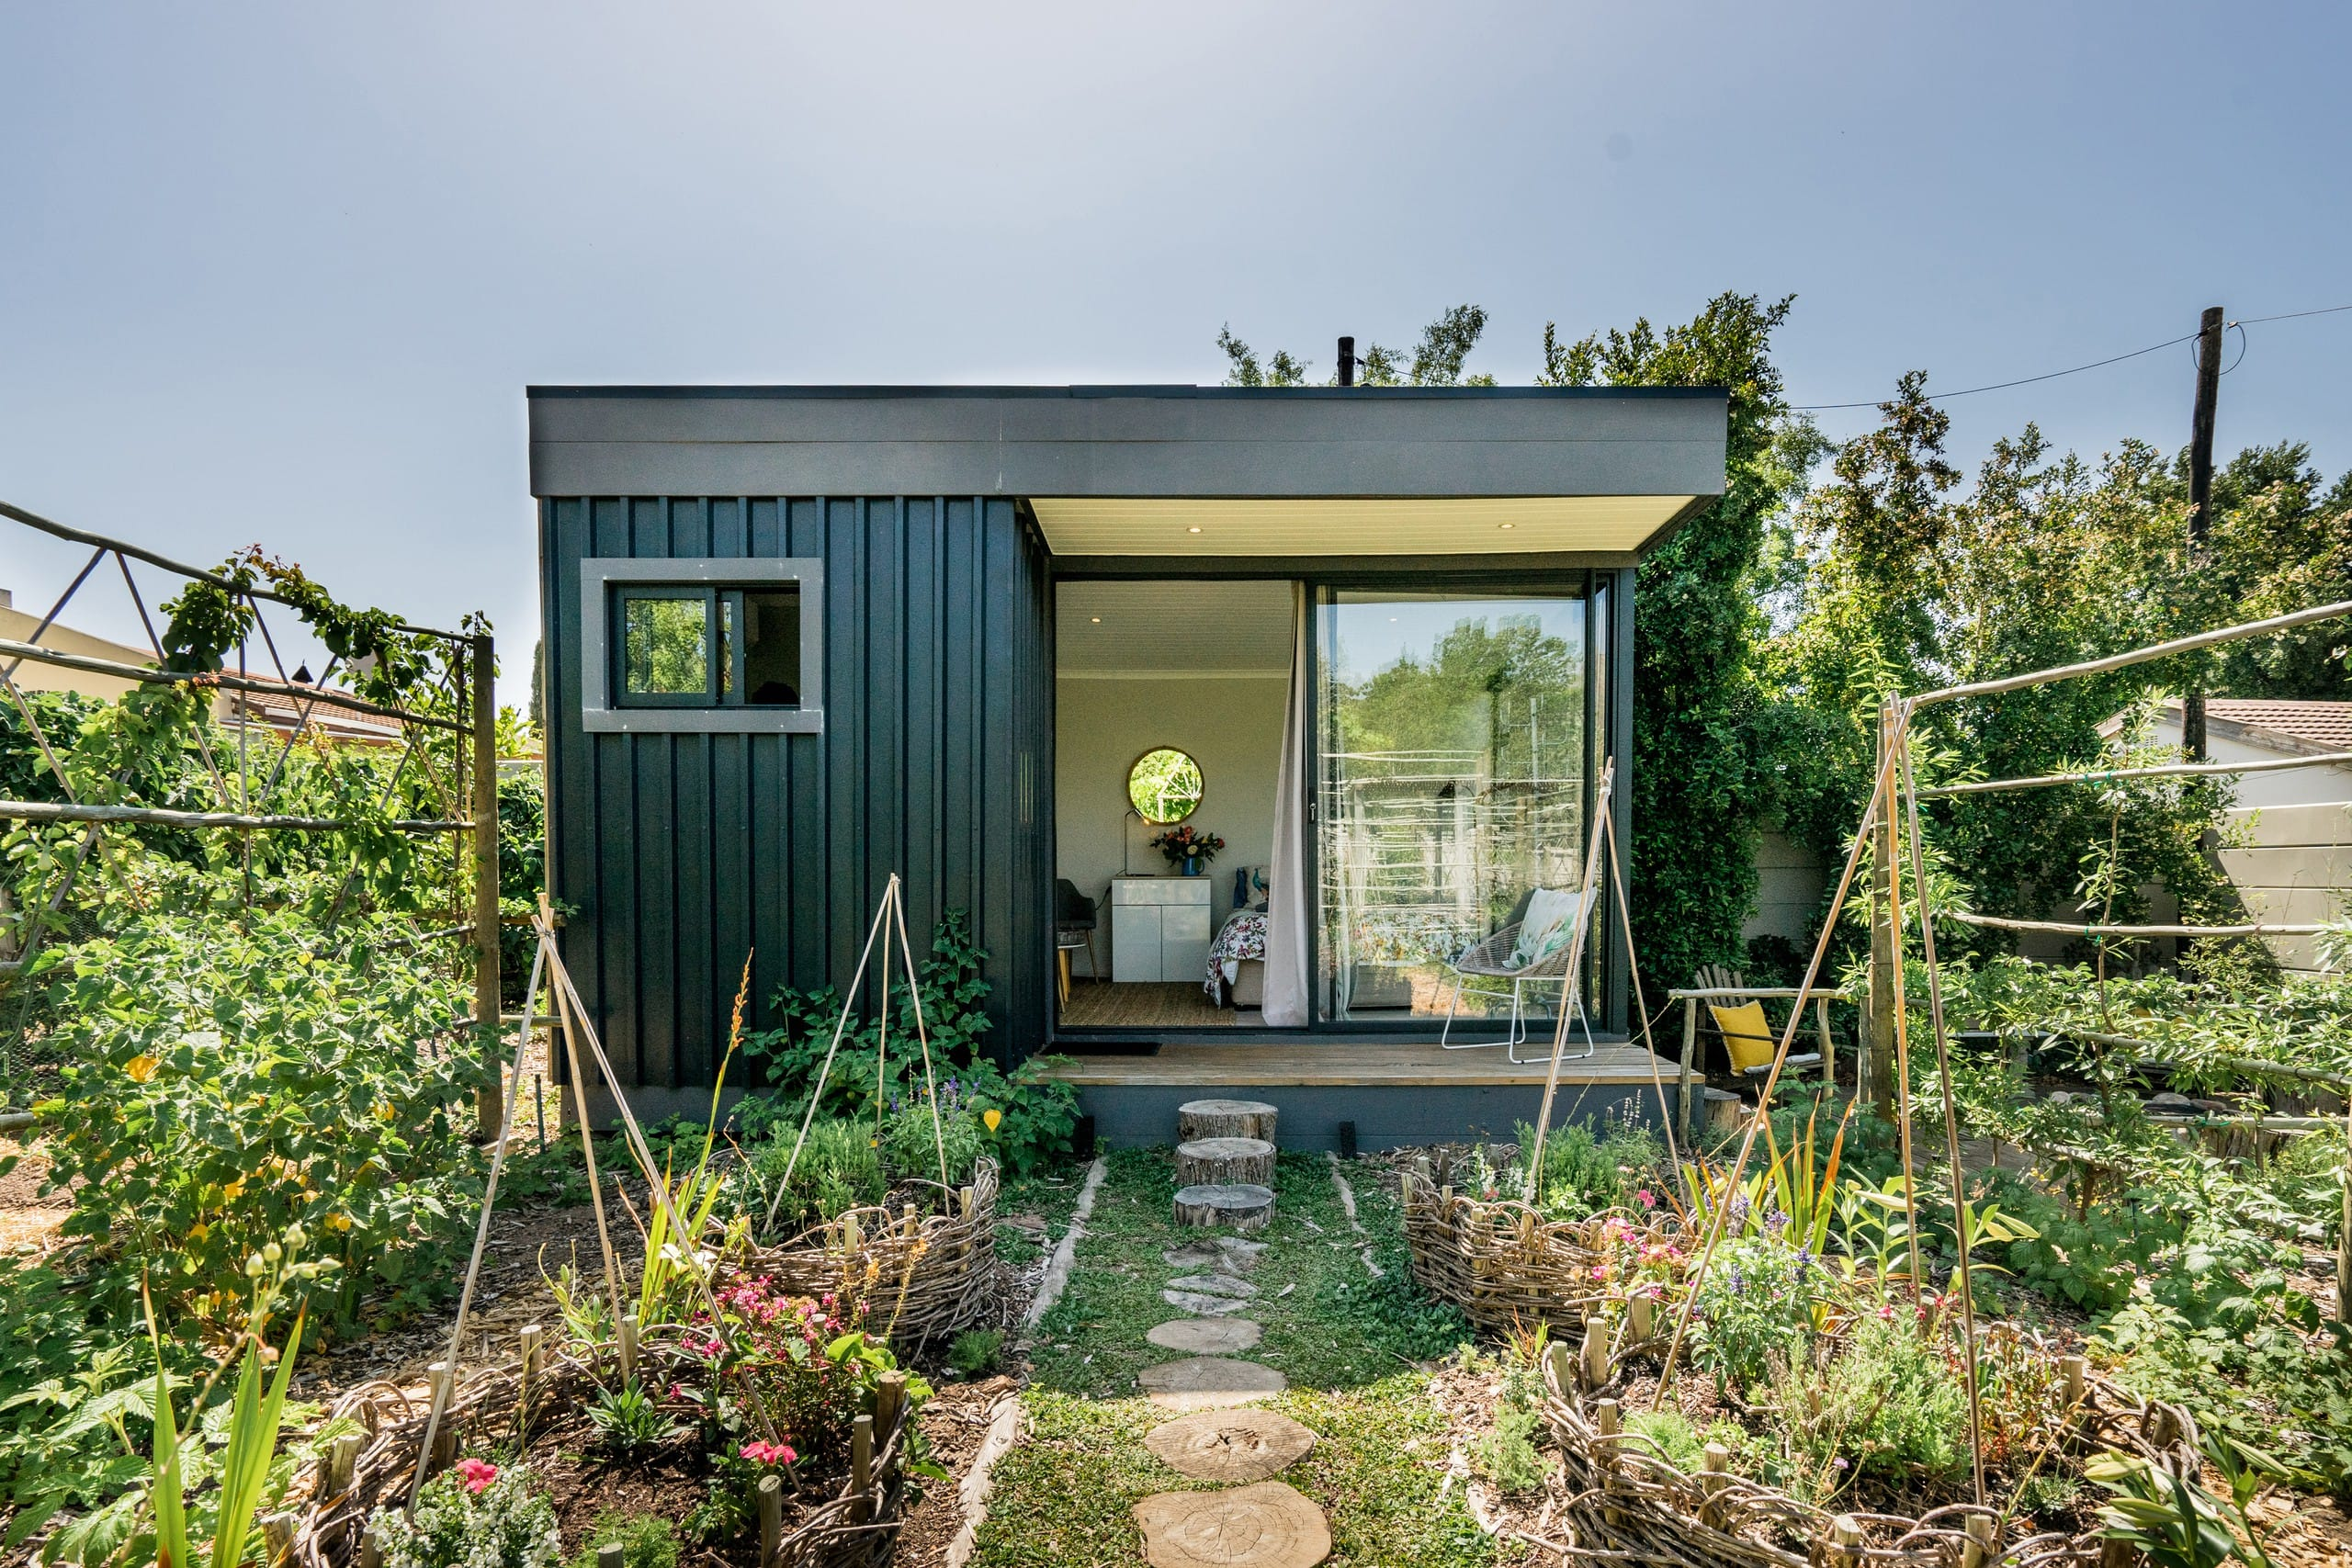 Funky Cabin Set Amidst an Organic Herb and Veg Garden - Tiny